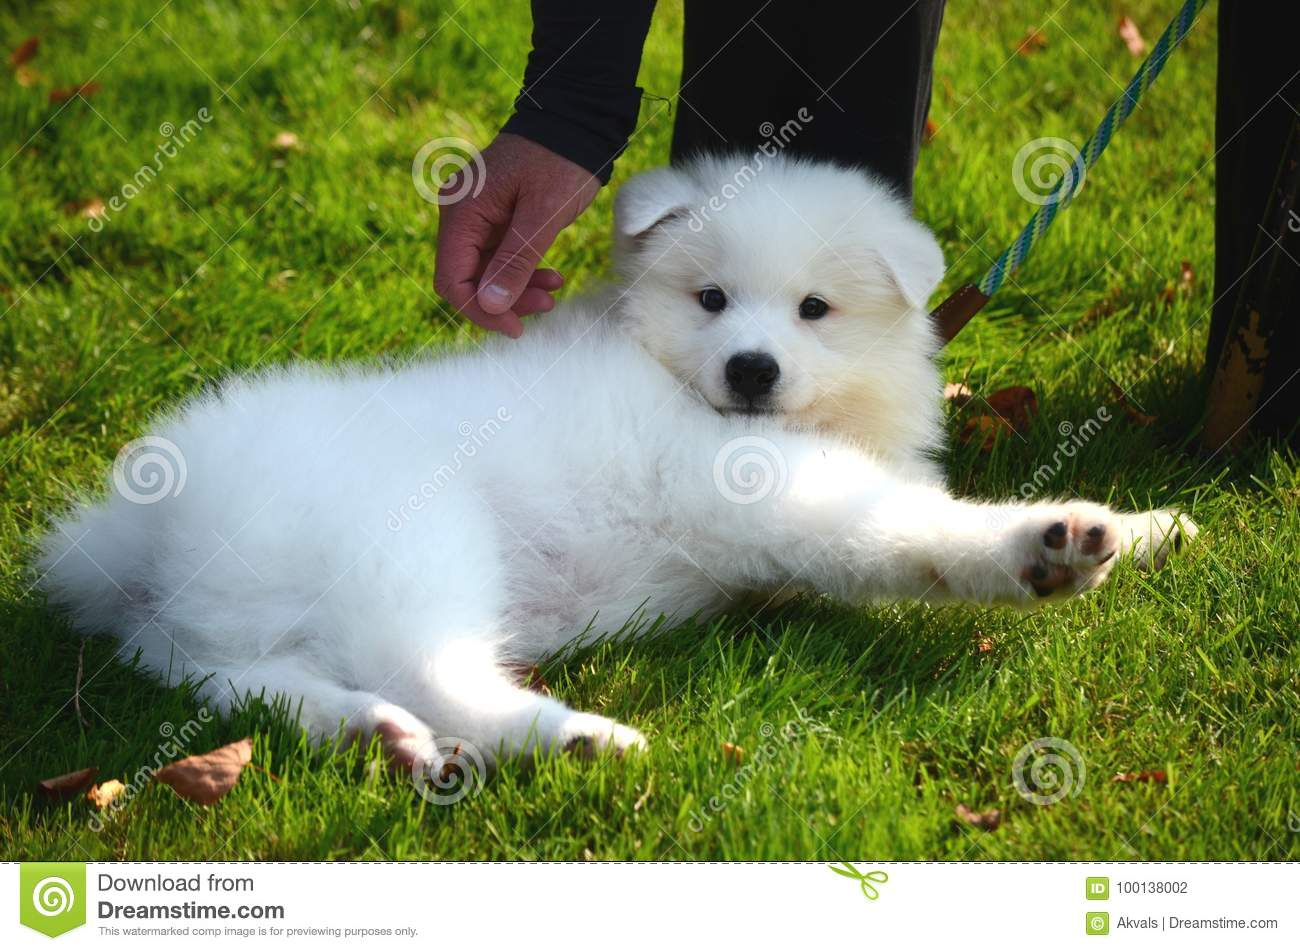 A Cute Pet Dog A White Japanese Spitz Puppy On The Street On A